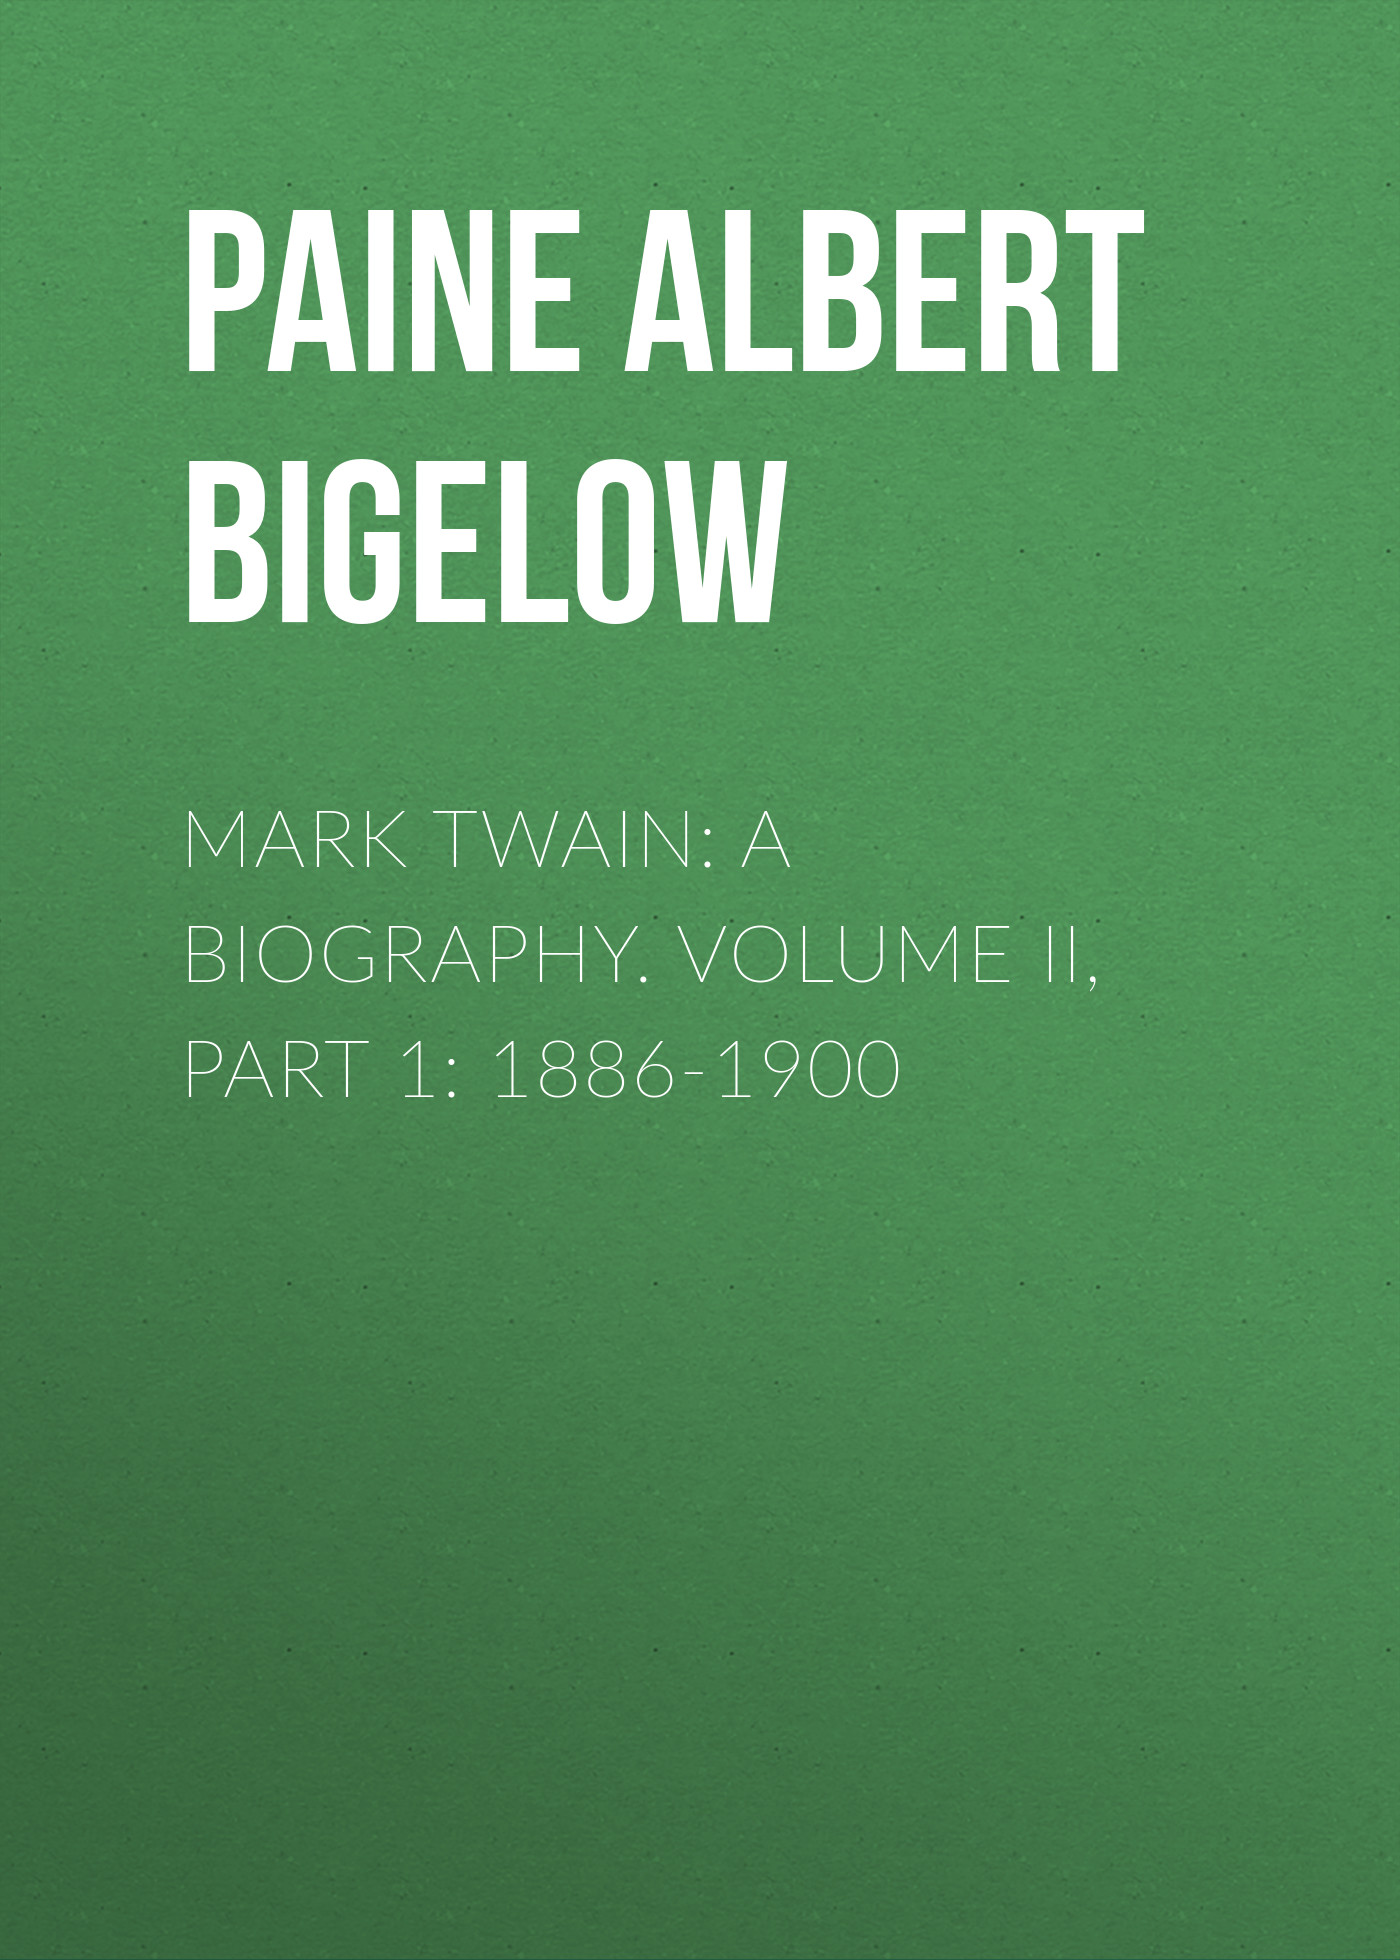 Фото - Paine Albert Bigelow Mark Twain: A Biography. Volume II, Part 1: 1886-1900 paine albert bigelow mark twain a biography volume ii part 1 1886 1900